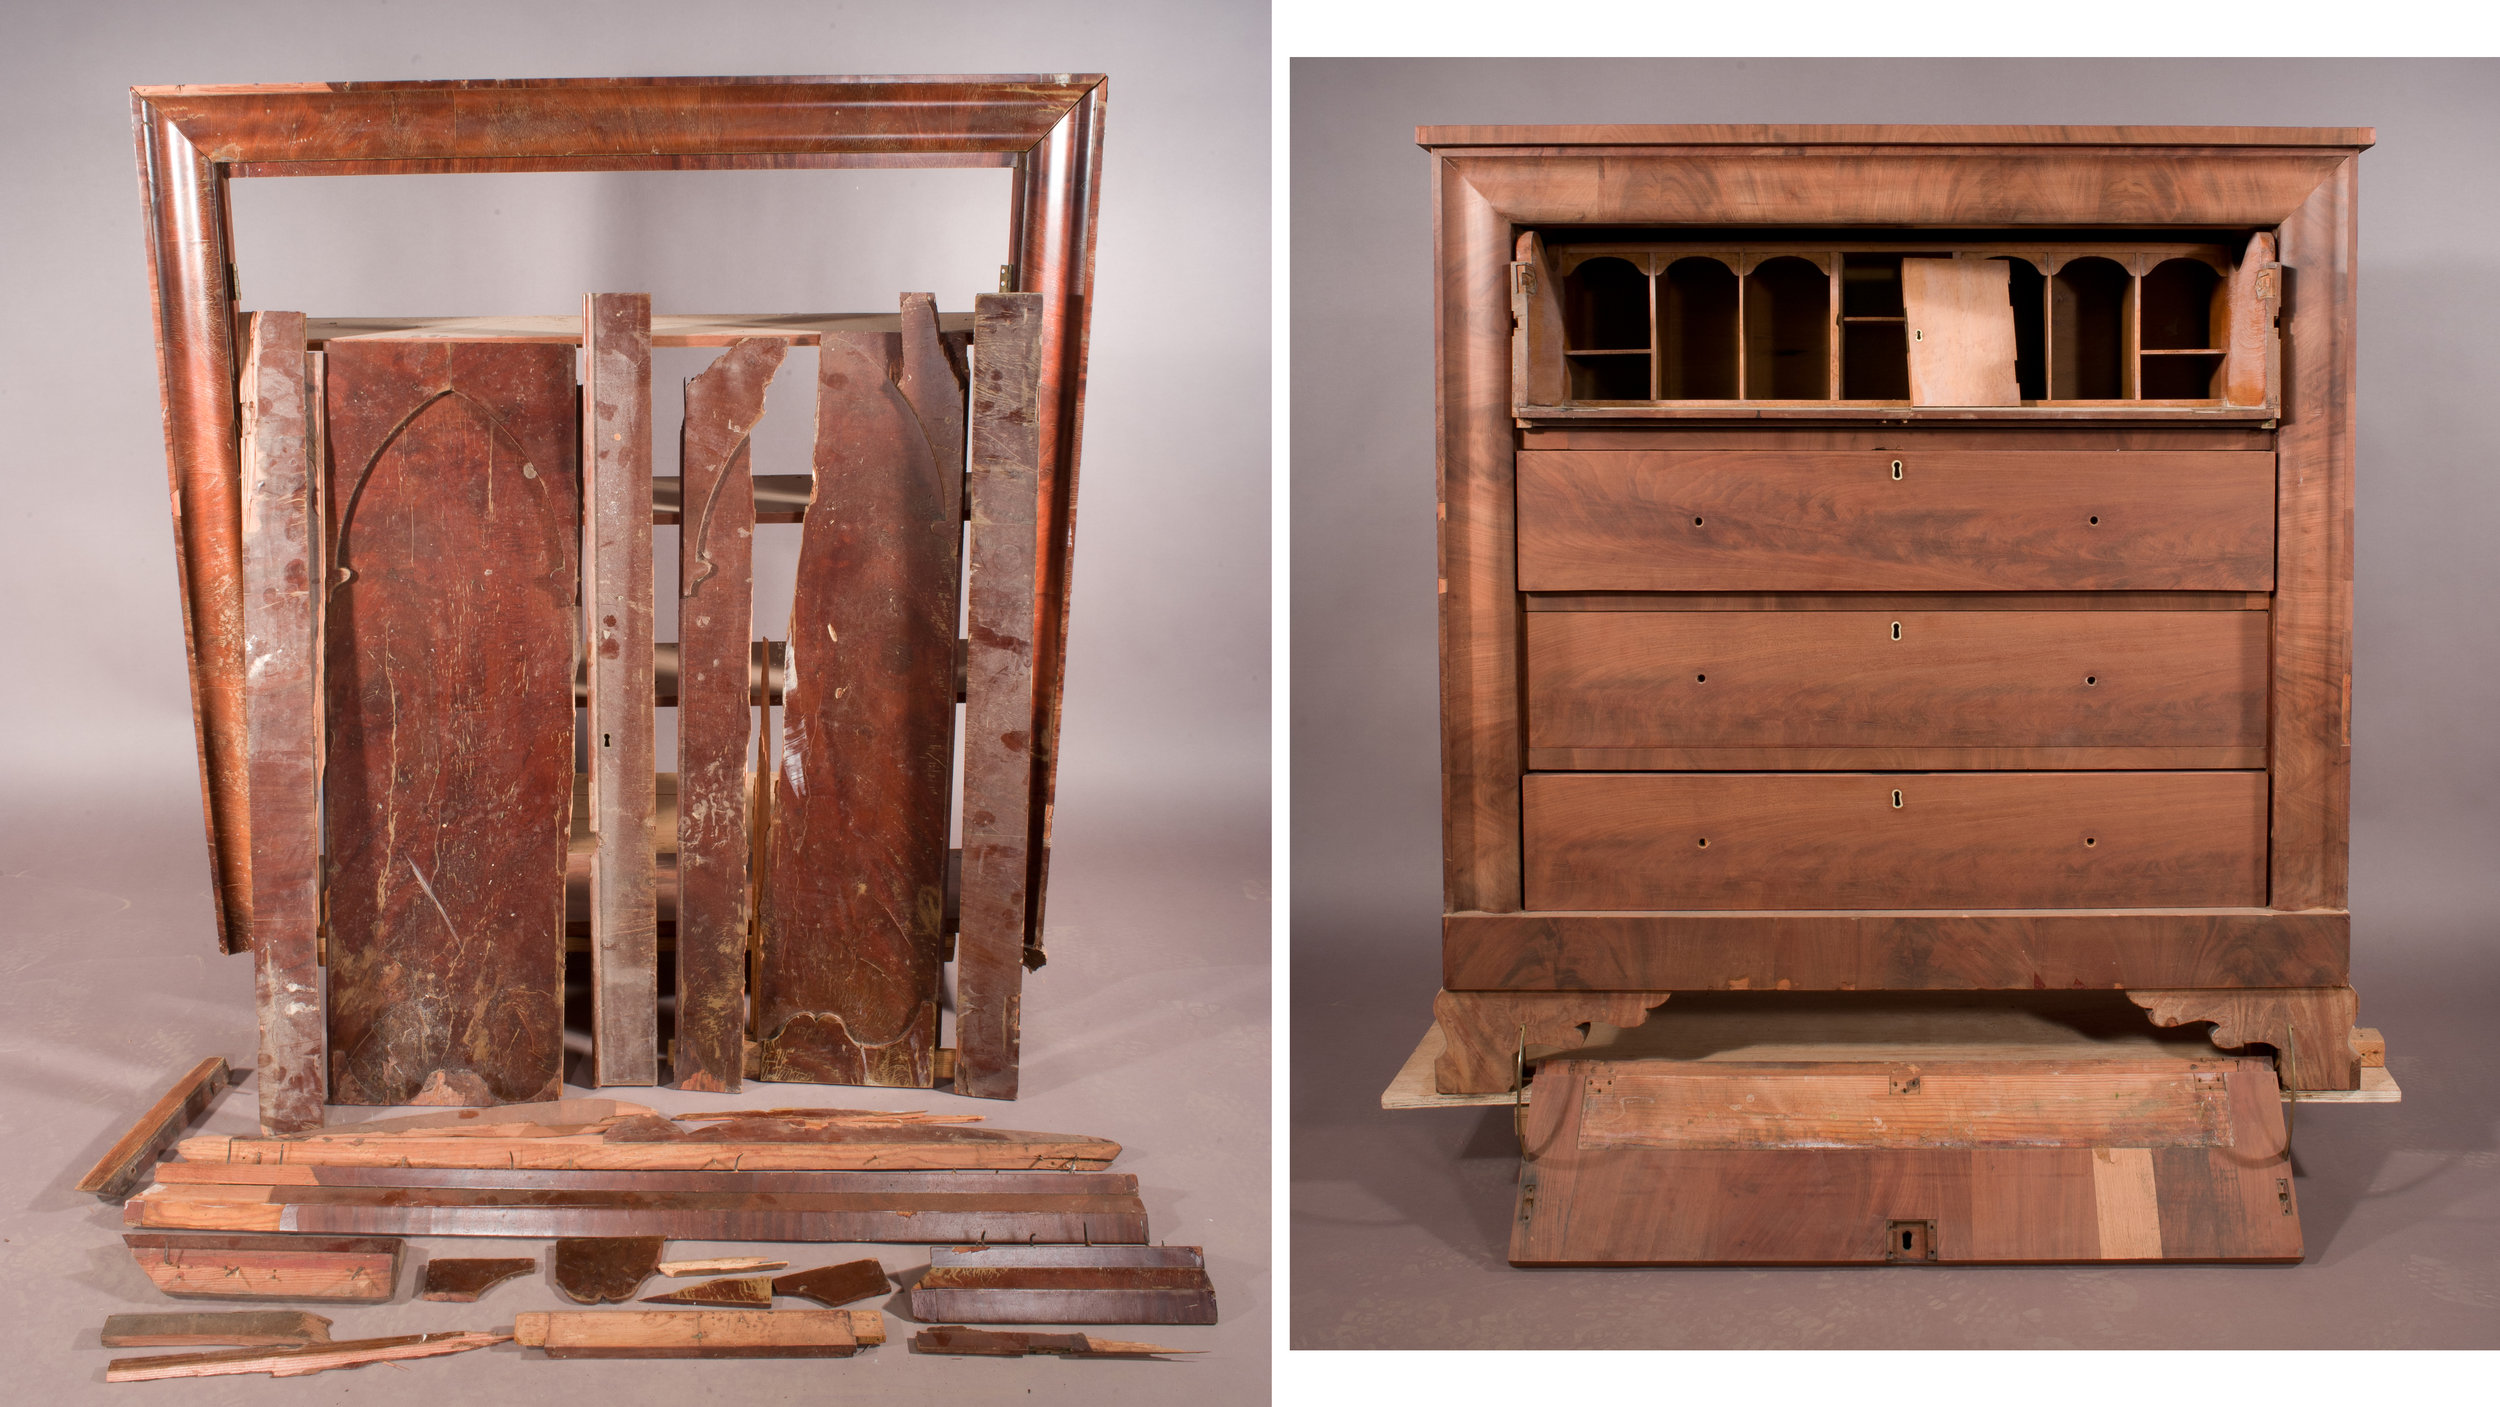 These images clearly illustrate the condition of the bookcase section (left) as it was received for restoration and conservation. And by contrast, the relatively unblemished secretary section (right).